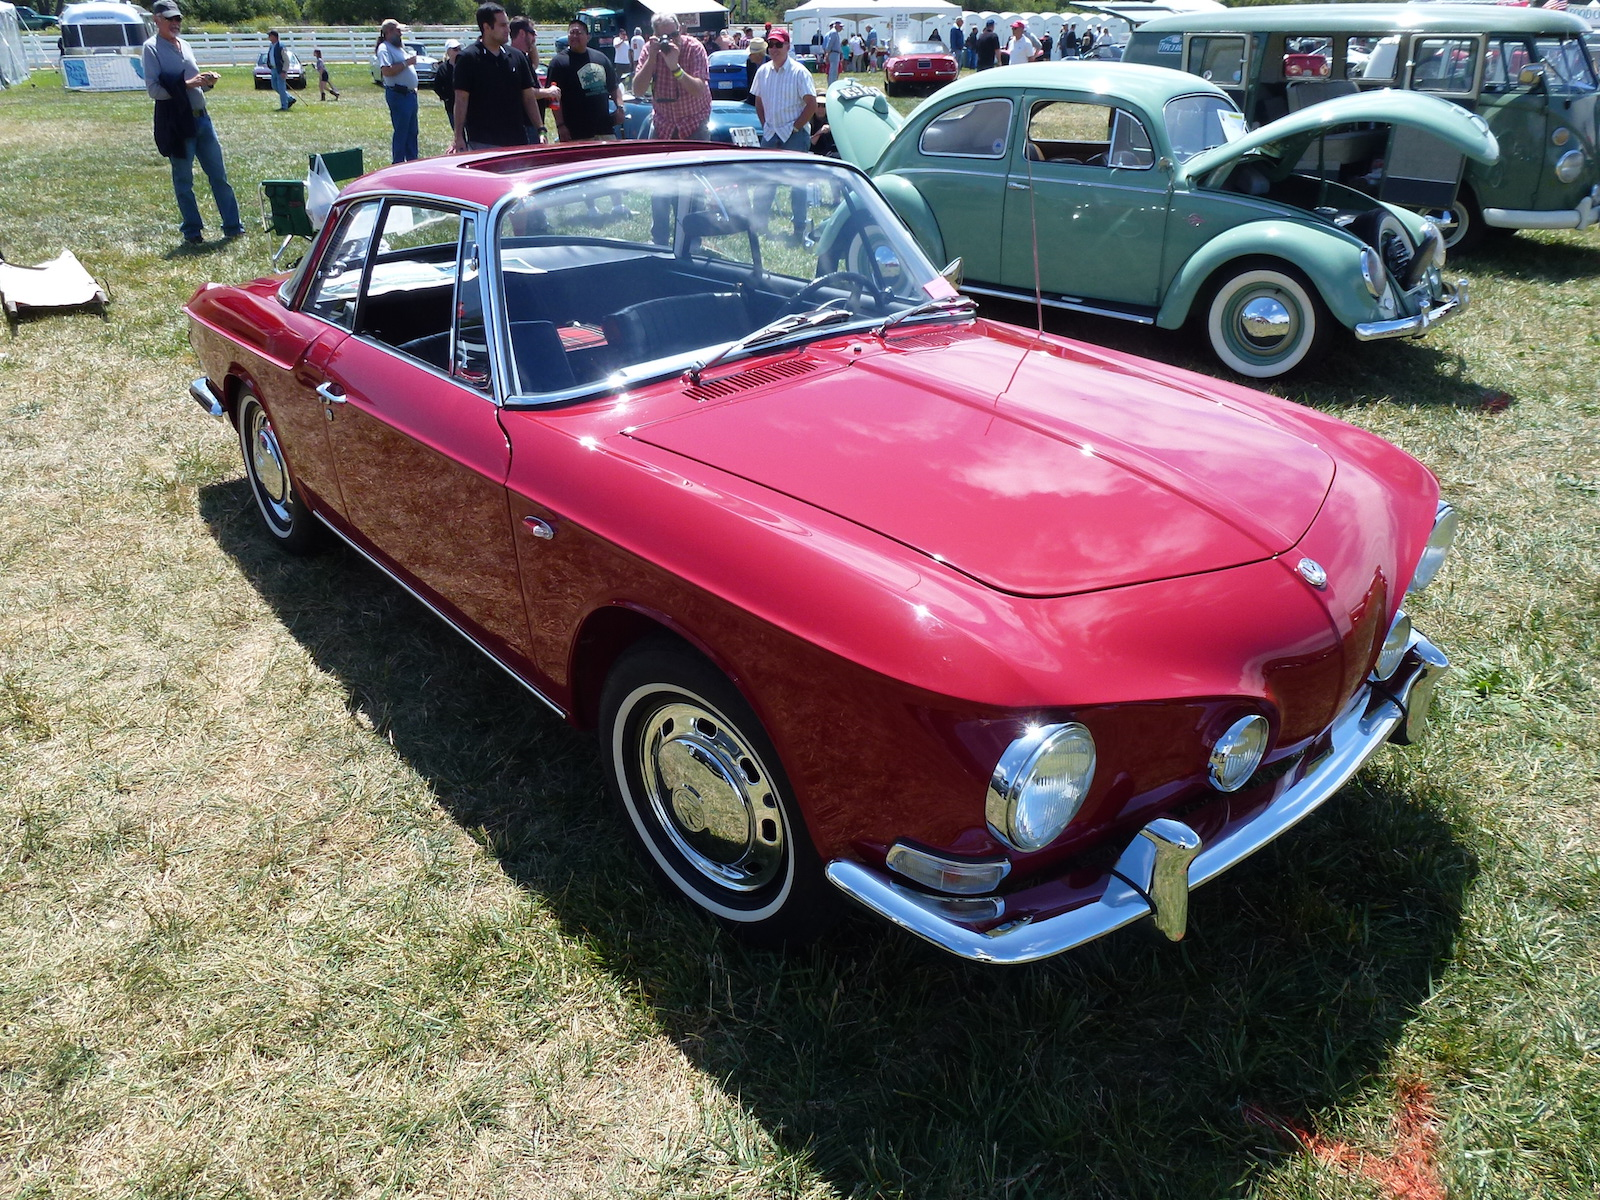 Another Volkswagen - The Type 34 Ghia